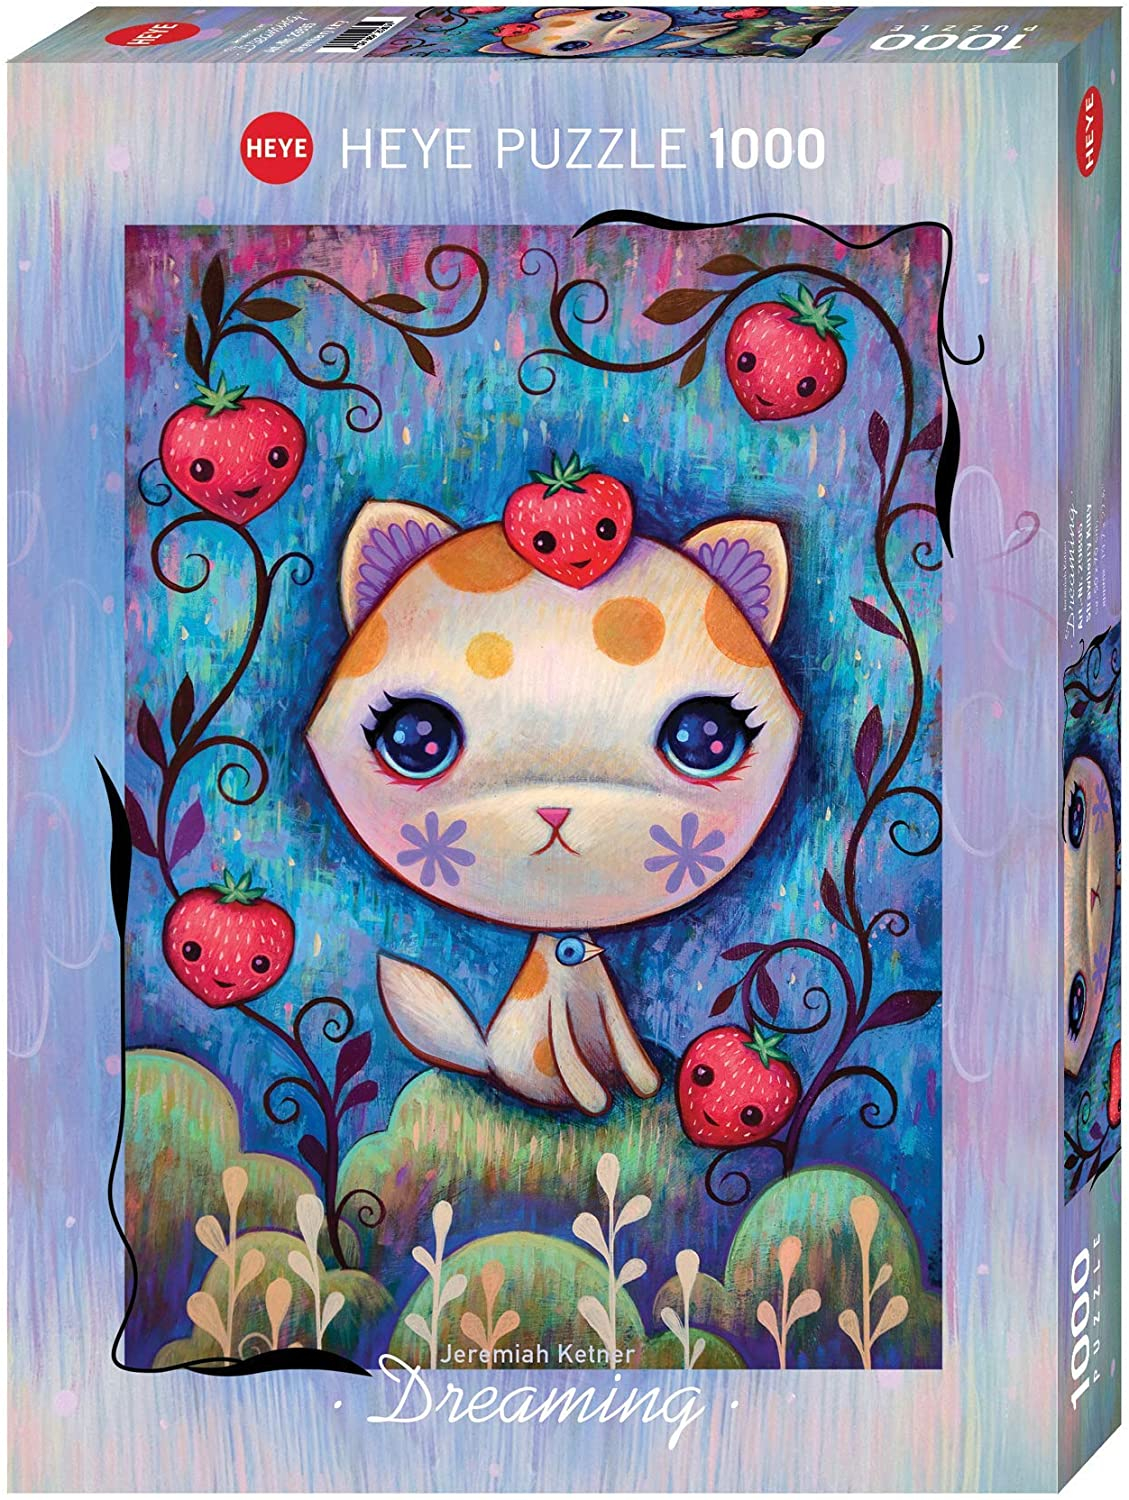 HEYE - DREAMING (by Jeremiah Ketner) Strawberry Kitty - Puzzle 1000 Pezzi